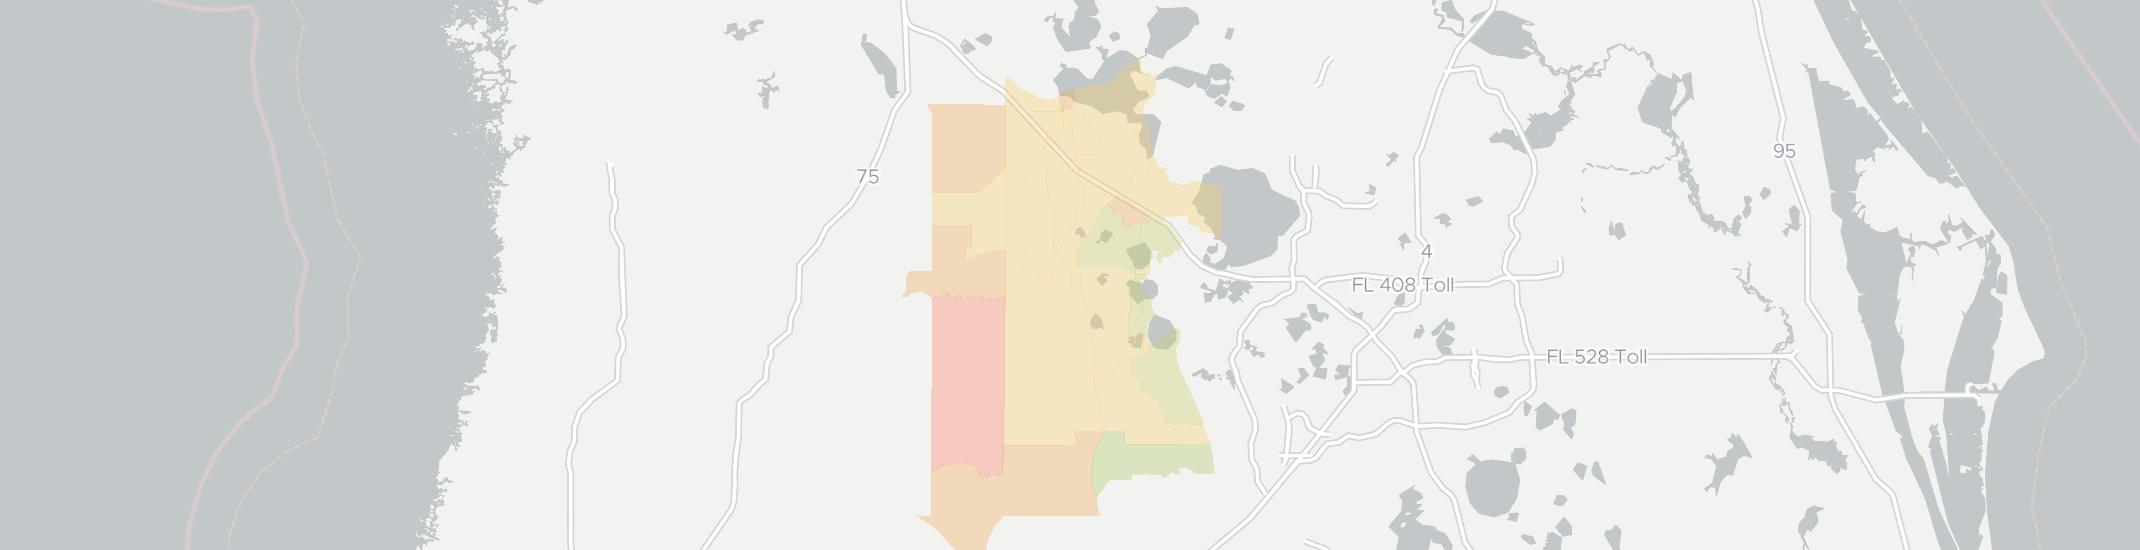 Groveland Florida Map.Internet Providers In Groveland Fl Compare 16 Providers